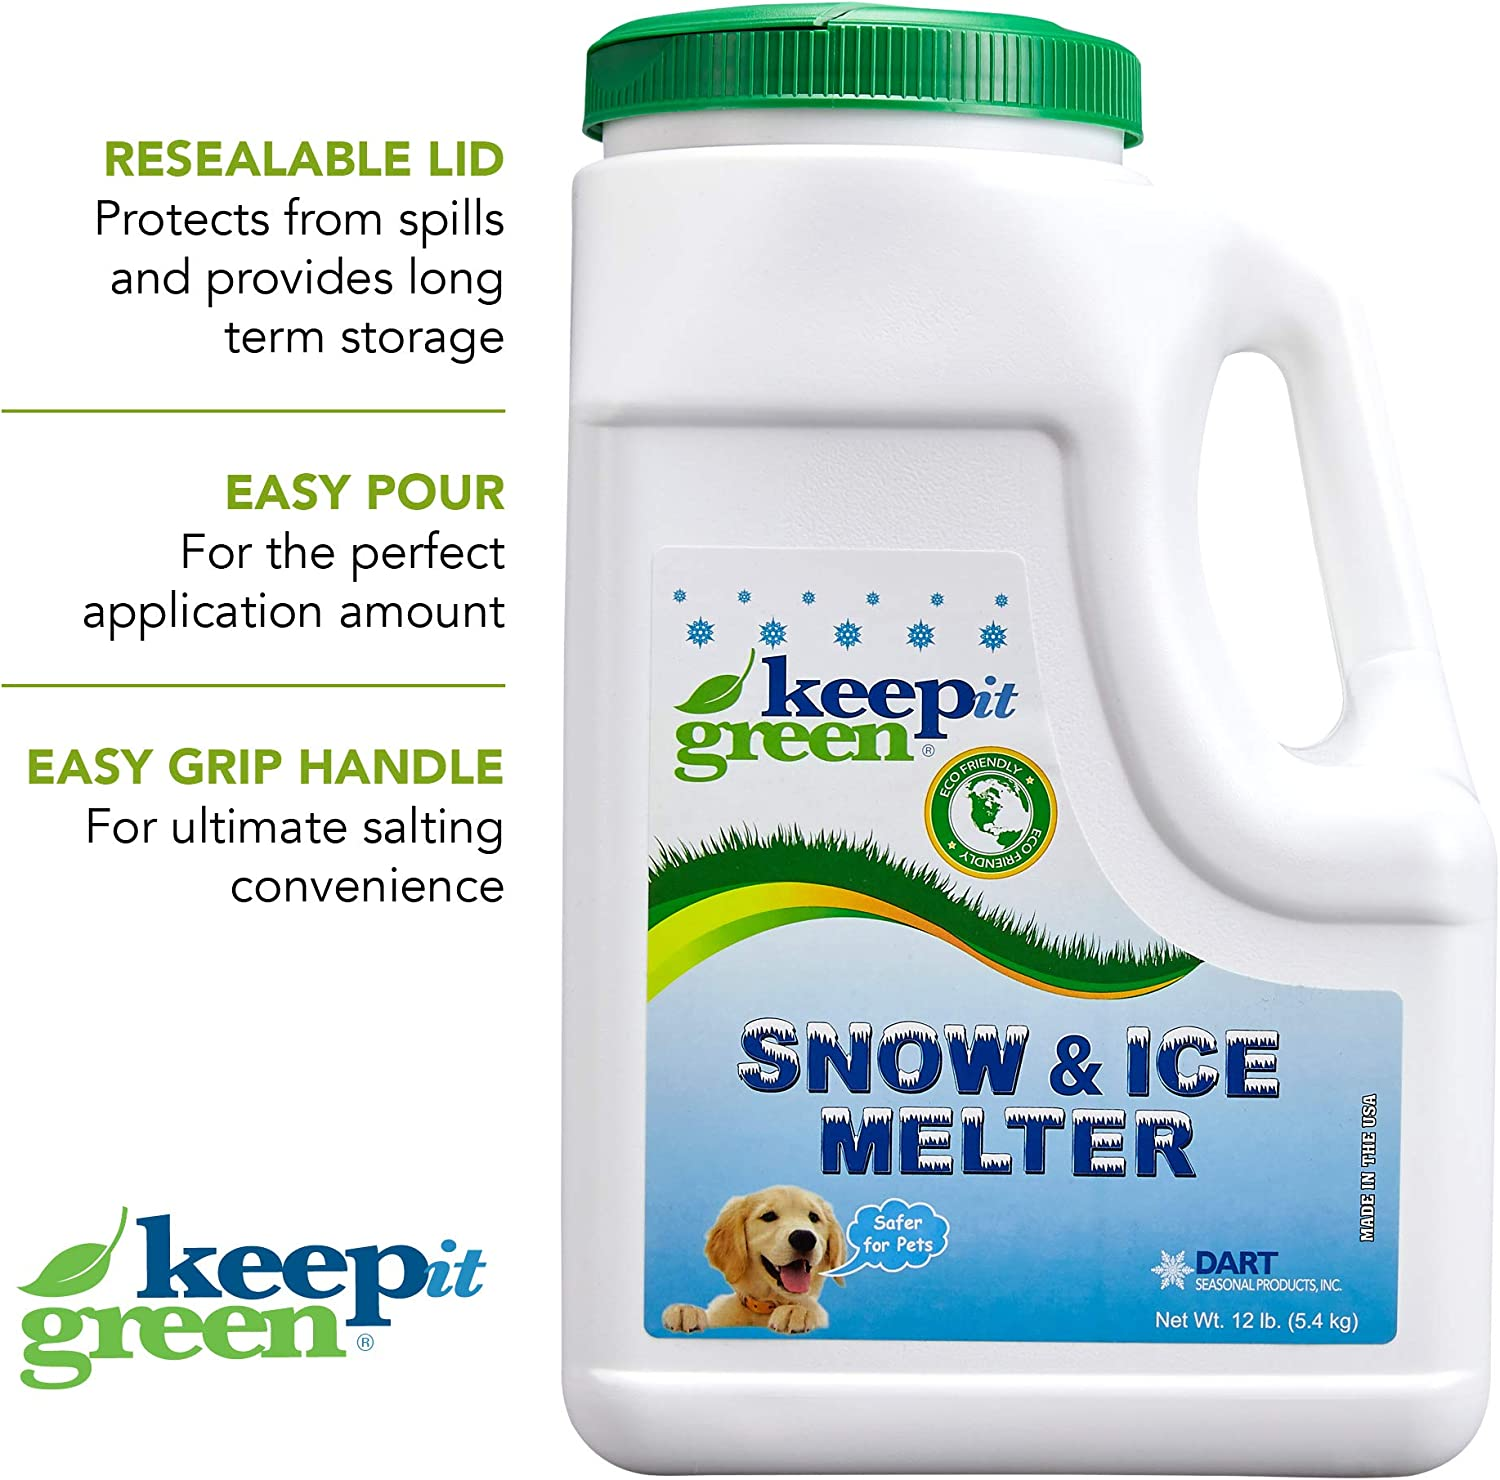 KEEP IT GREEN Pet Safe Snow Melt – 12 Pound Jug - Nontoxic Child Friendly Ice Melter Rock Salt Pellets with Green Tint - Time Release Fertilizer for Grass and Garden – Calcium Chloride Free